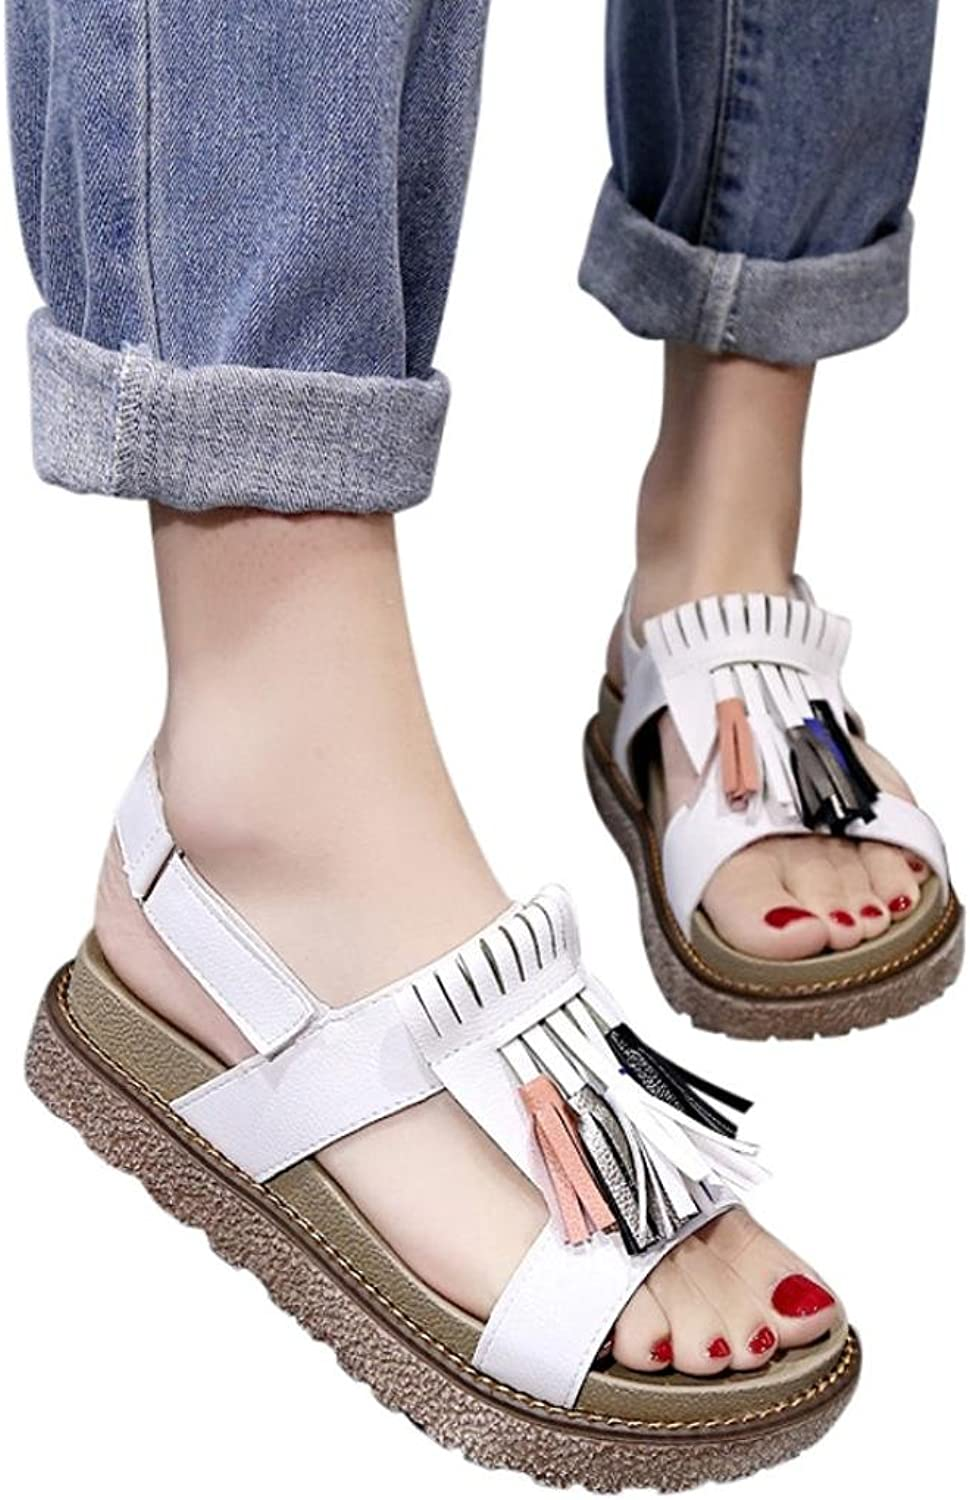 Fheaven Summer Women Sandals Low Platform Tassel shoes Casual Beach Comfortable Sandals